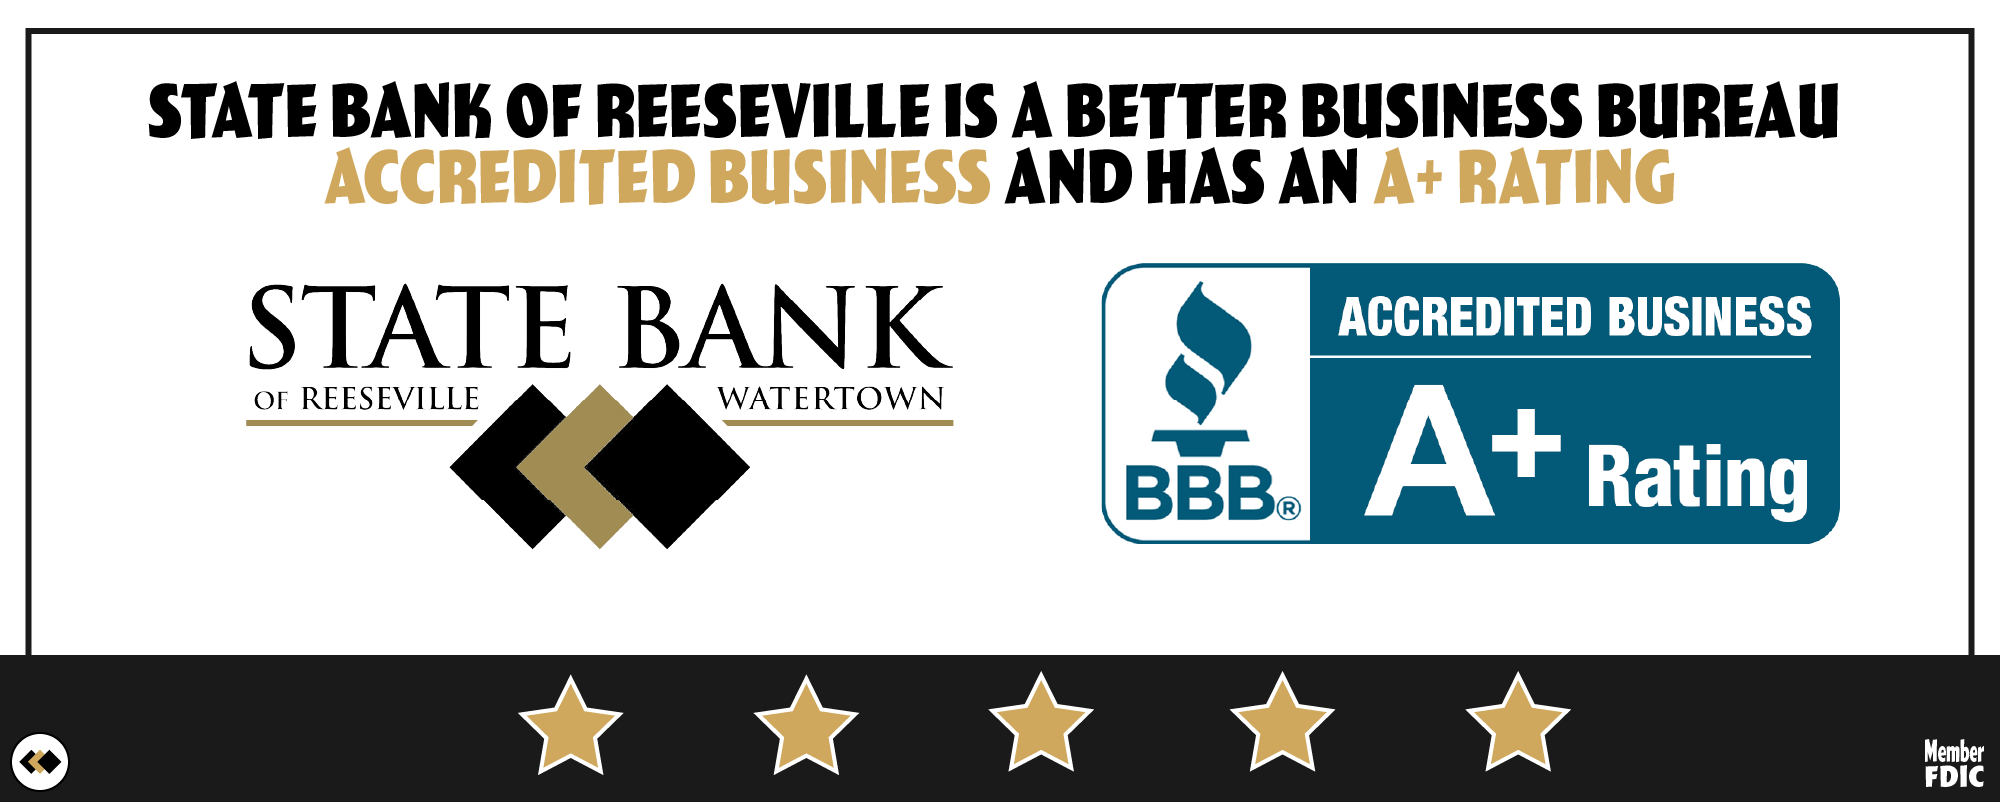 State Bank of Reeseville is a Better Business Bureau accredited business and holds an A+ Rating. Southern WI Bank.